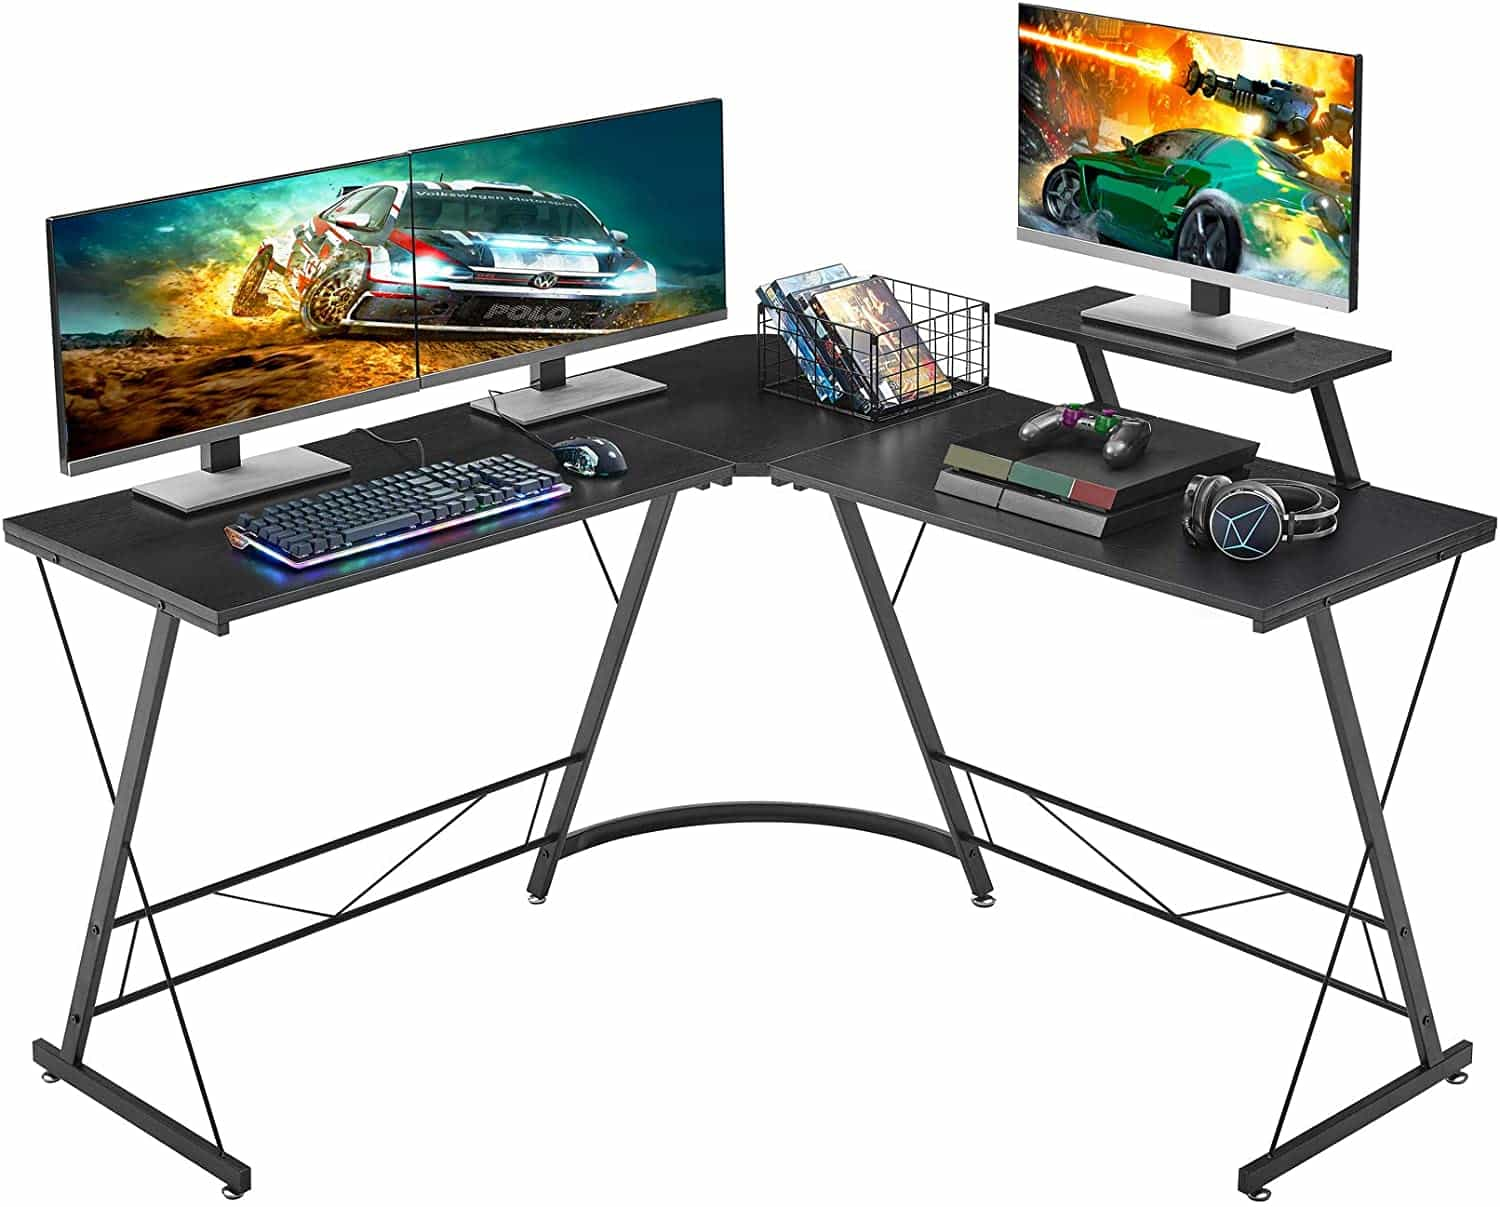 71uBn67o YL. AC SL1500 Best Desk for 3 Monitors - 8 Great Products and Reviews ([year])